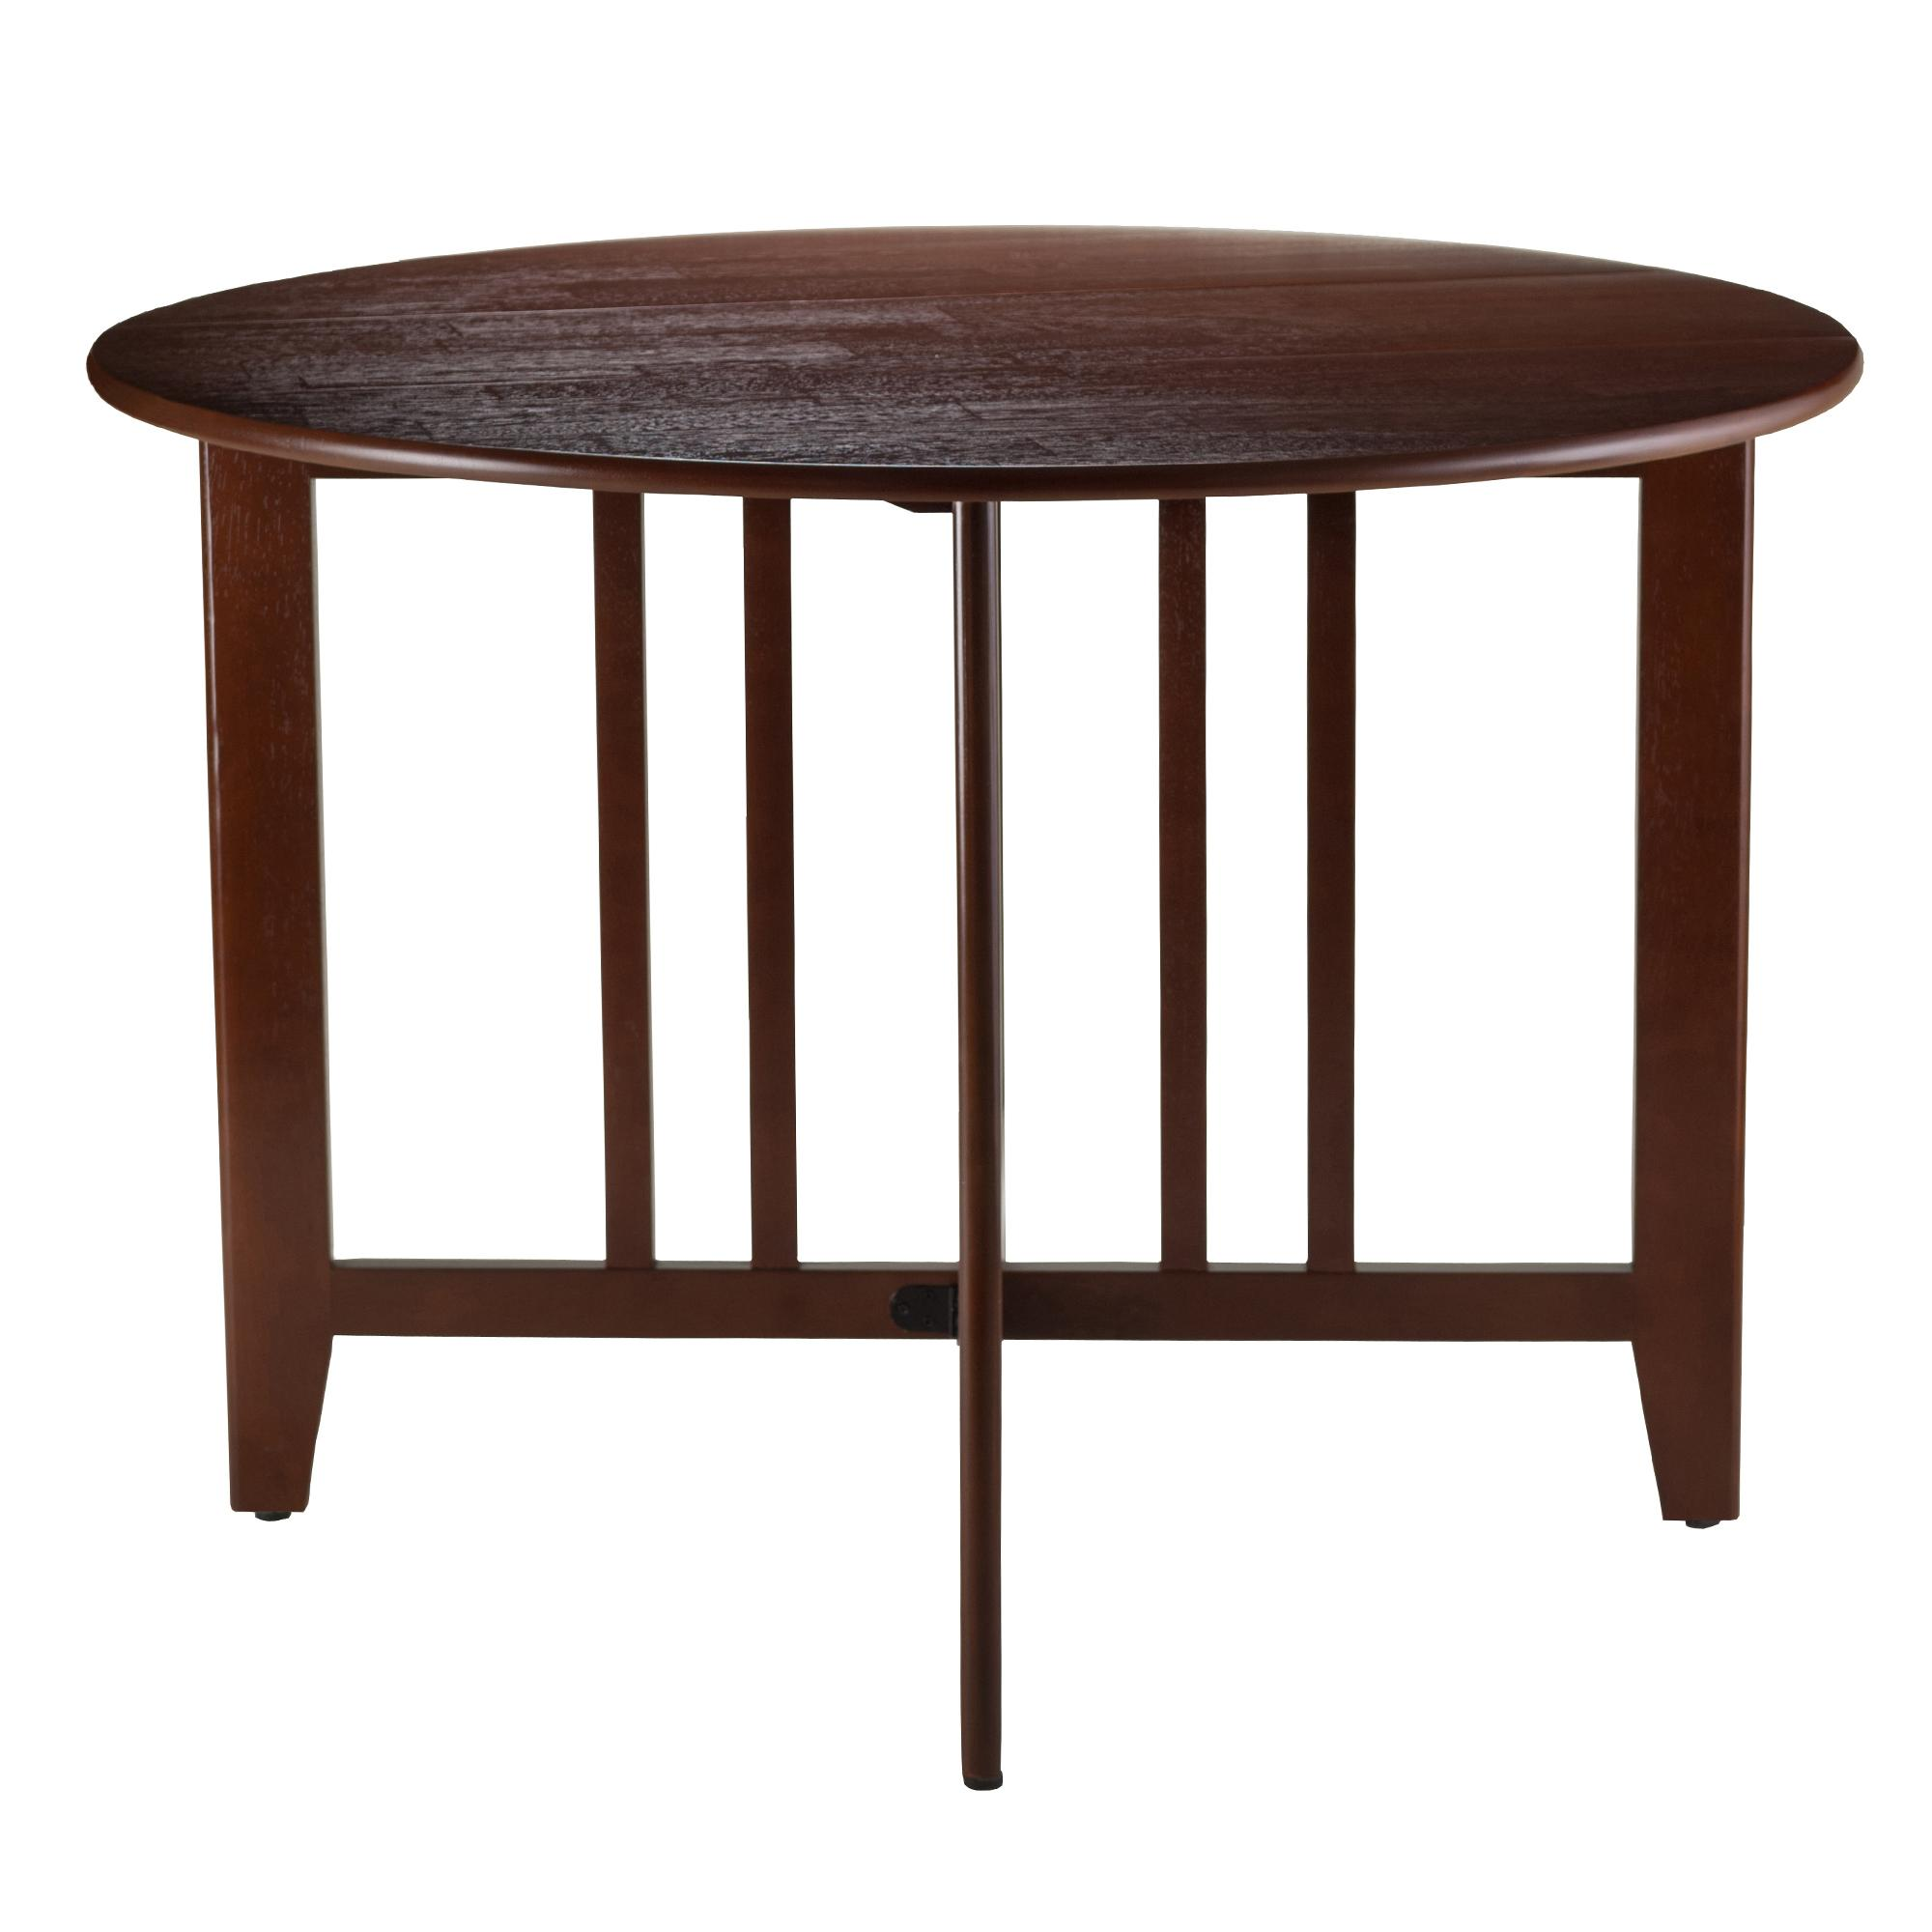 Winsome wood table double drop leaf round mission moon shape fold down - View Larger